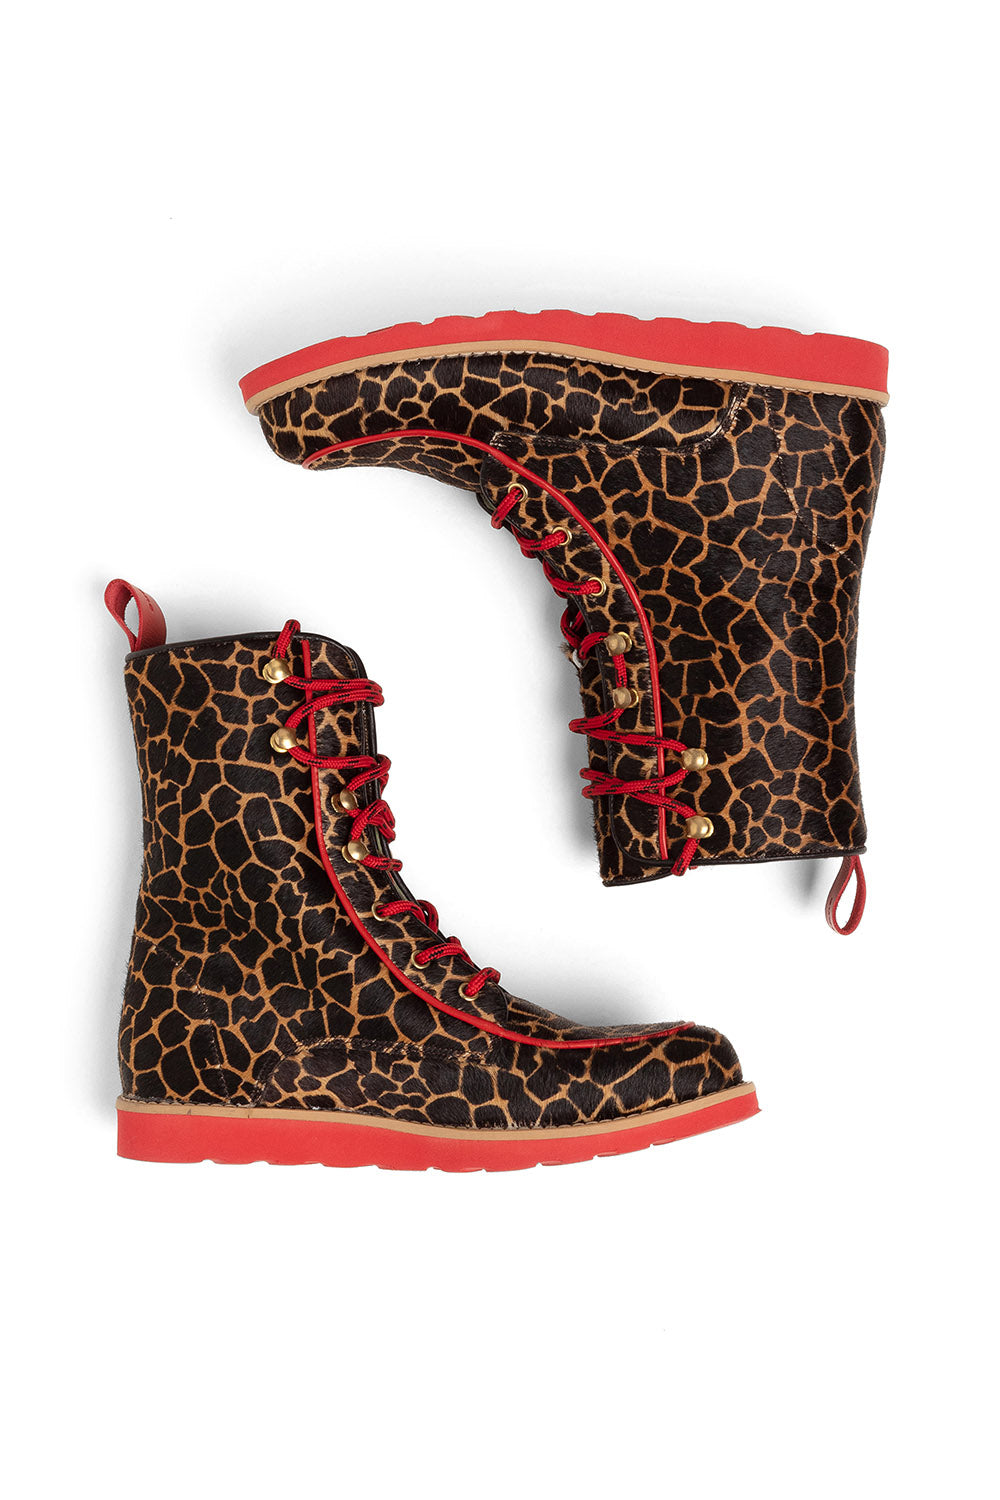 Mountain Boots in girafe printed leather